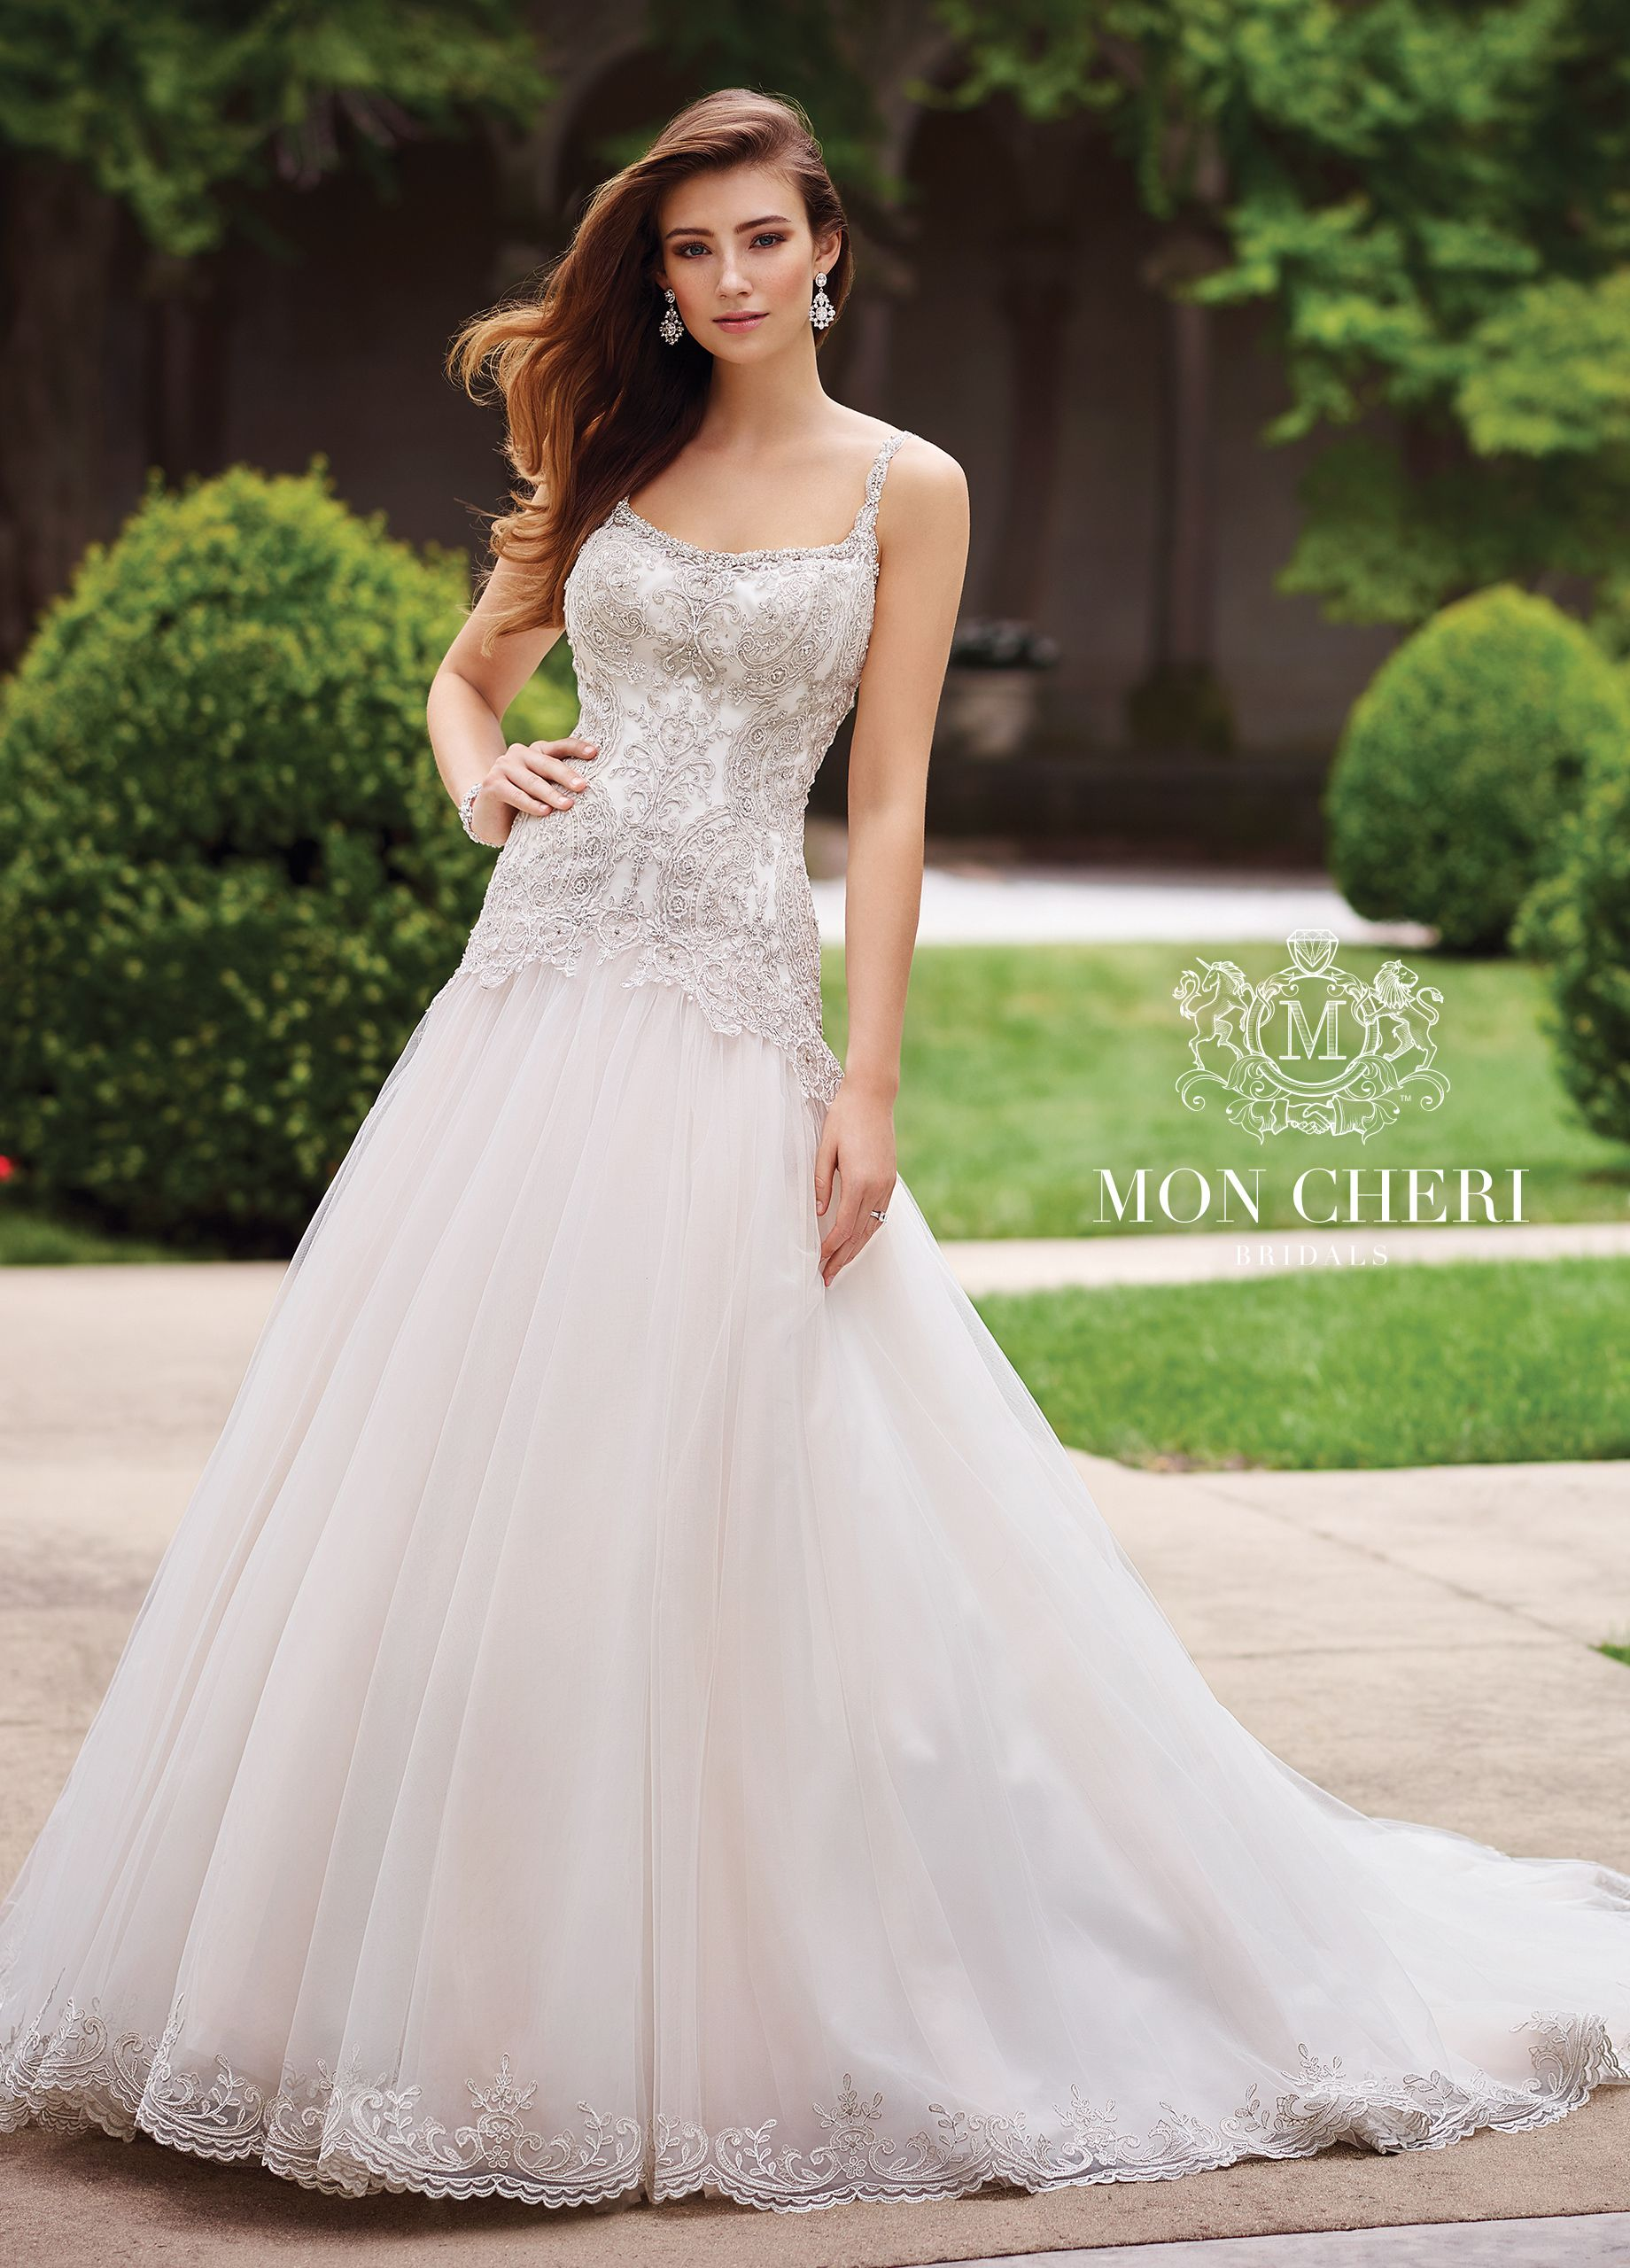 Wedding dress patterns with sleeves  Metallic Lace u Tulle ALine Wedding Dress  Carmelina